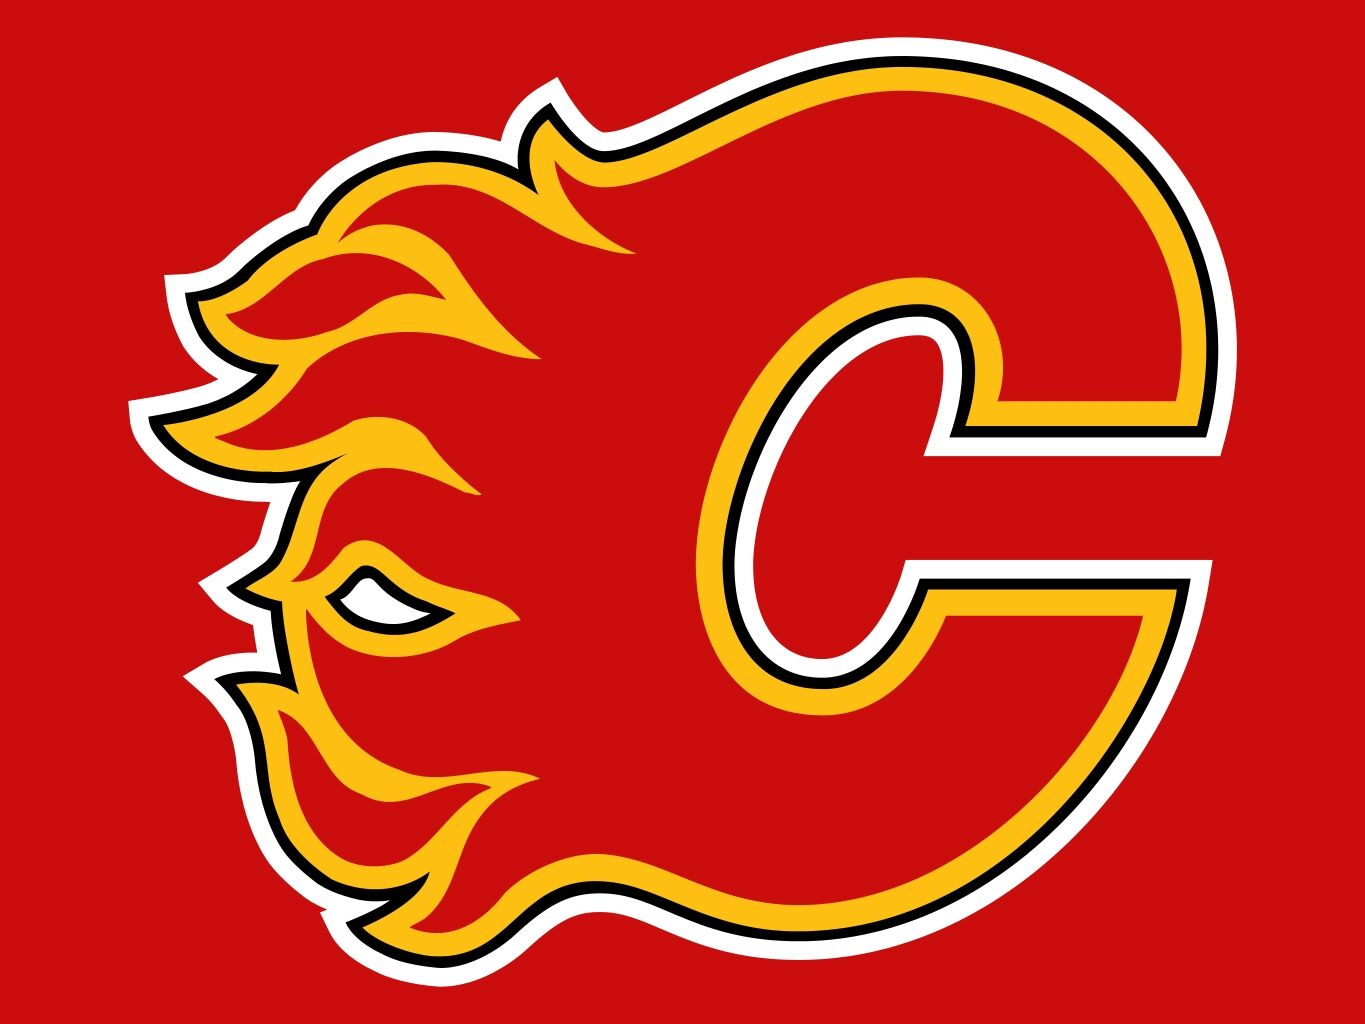 https://static.wikia.nocookie.net/nhl-hockey/images/4/4f/Calgary_Flames.JPG/revision/latest/scale-to-width-down/1365?cb=20170619215206